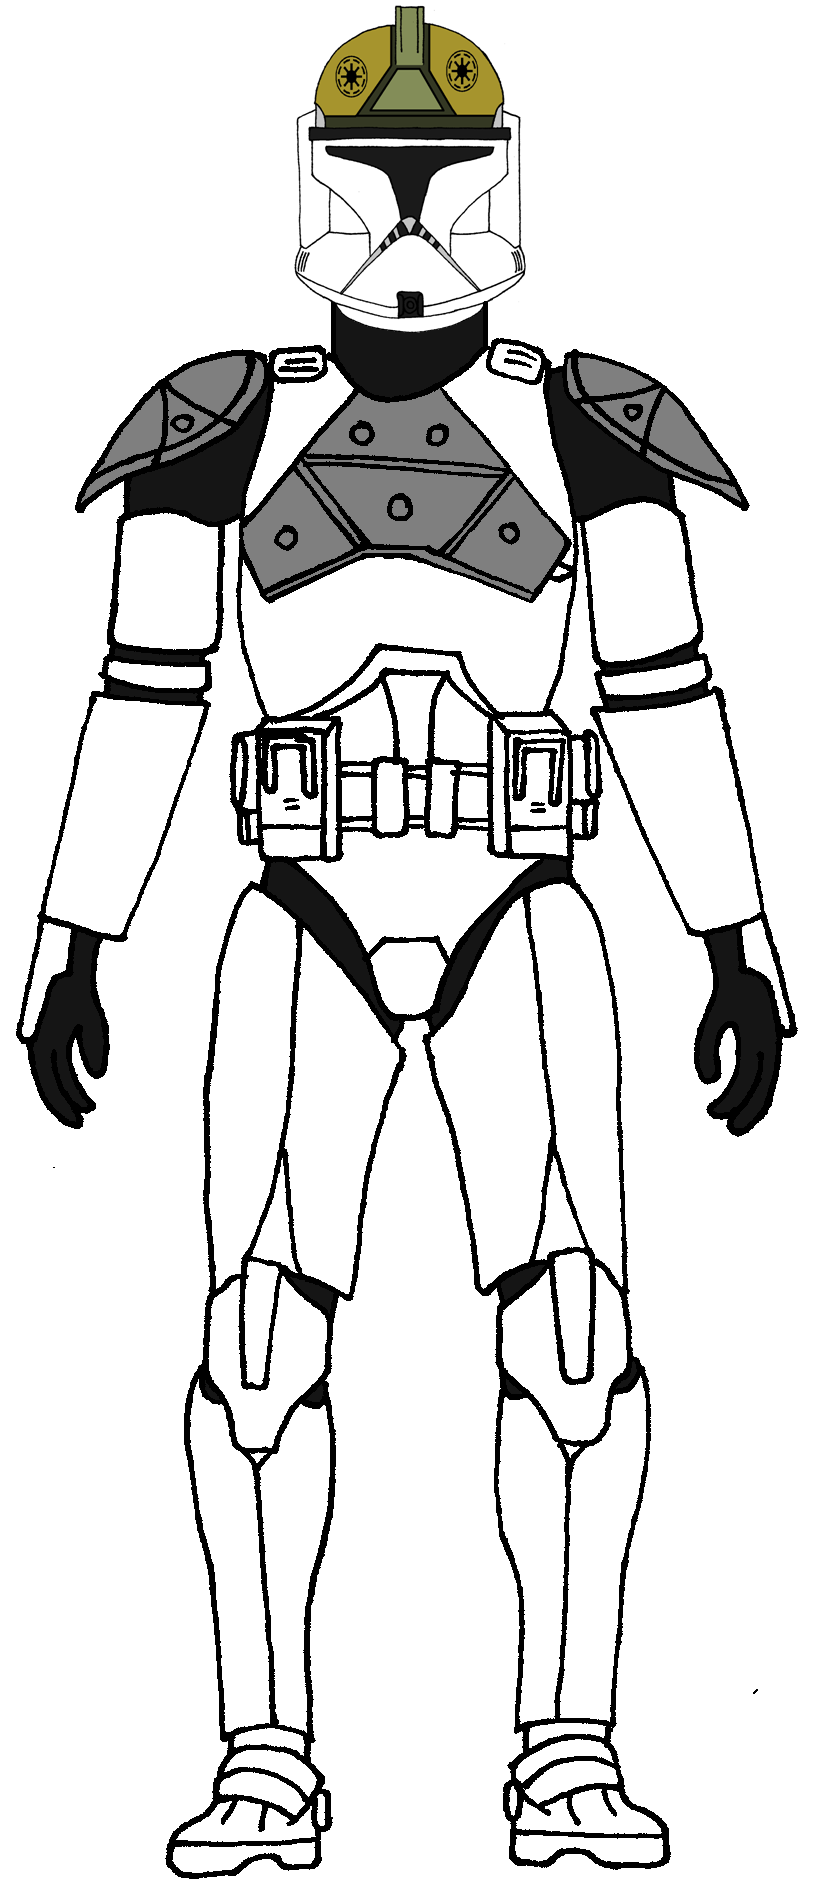 Clone Trooper Gunner 1 Star Wars Clone Wars Star Wars Drawings Star Wars Trooper